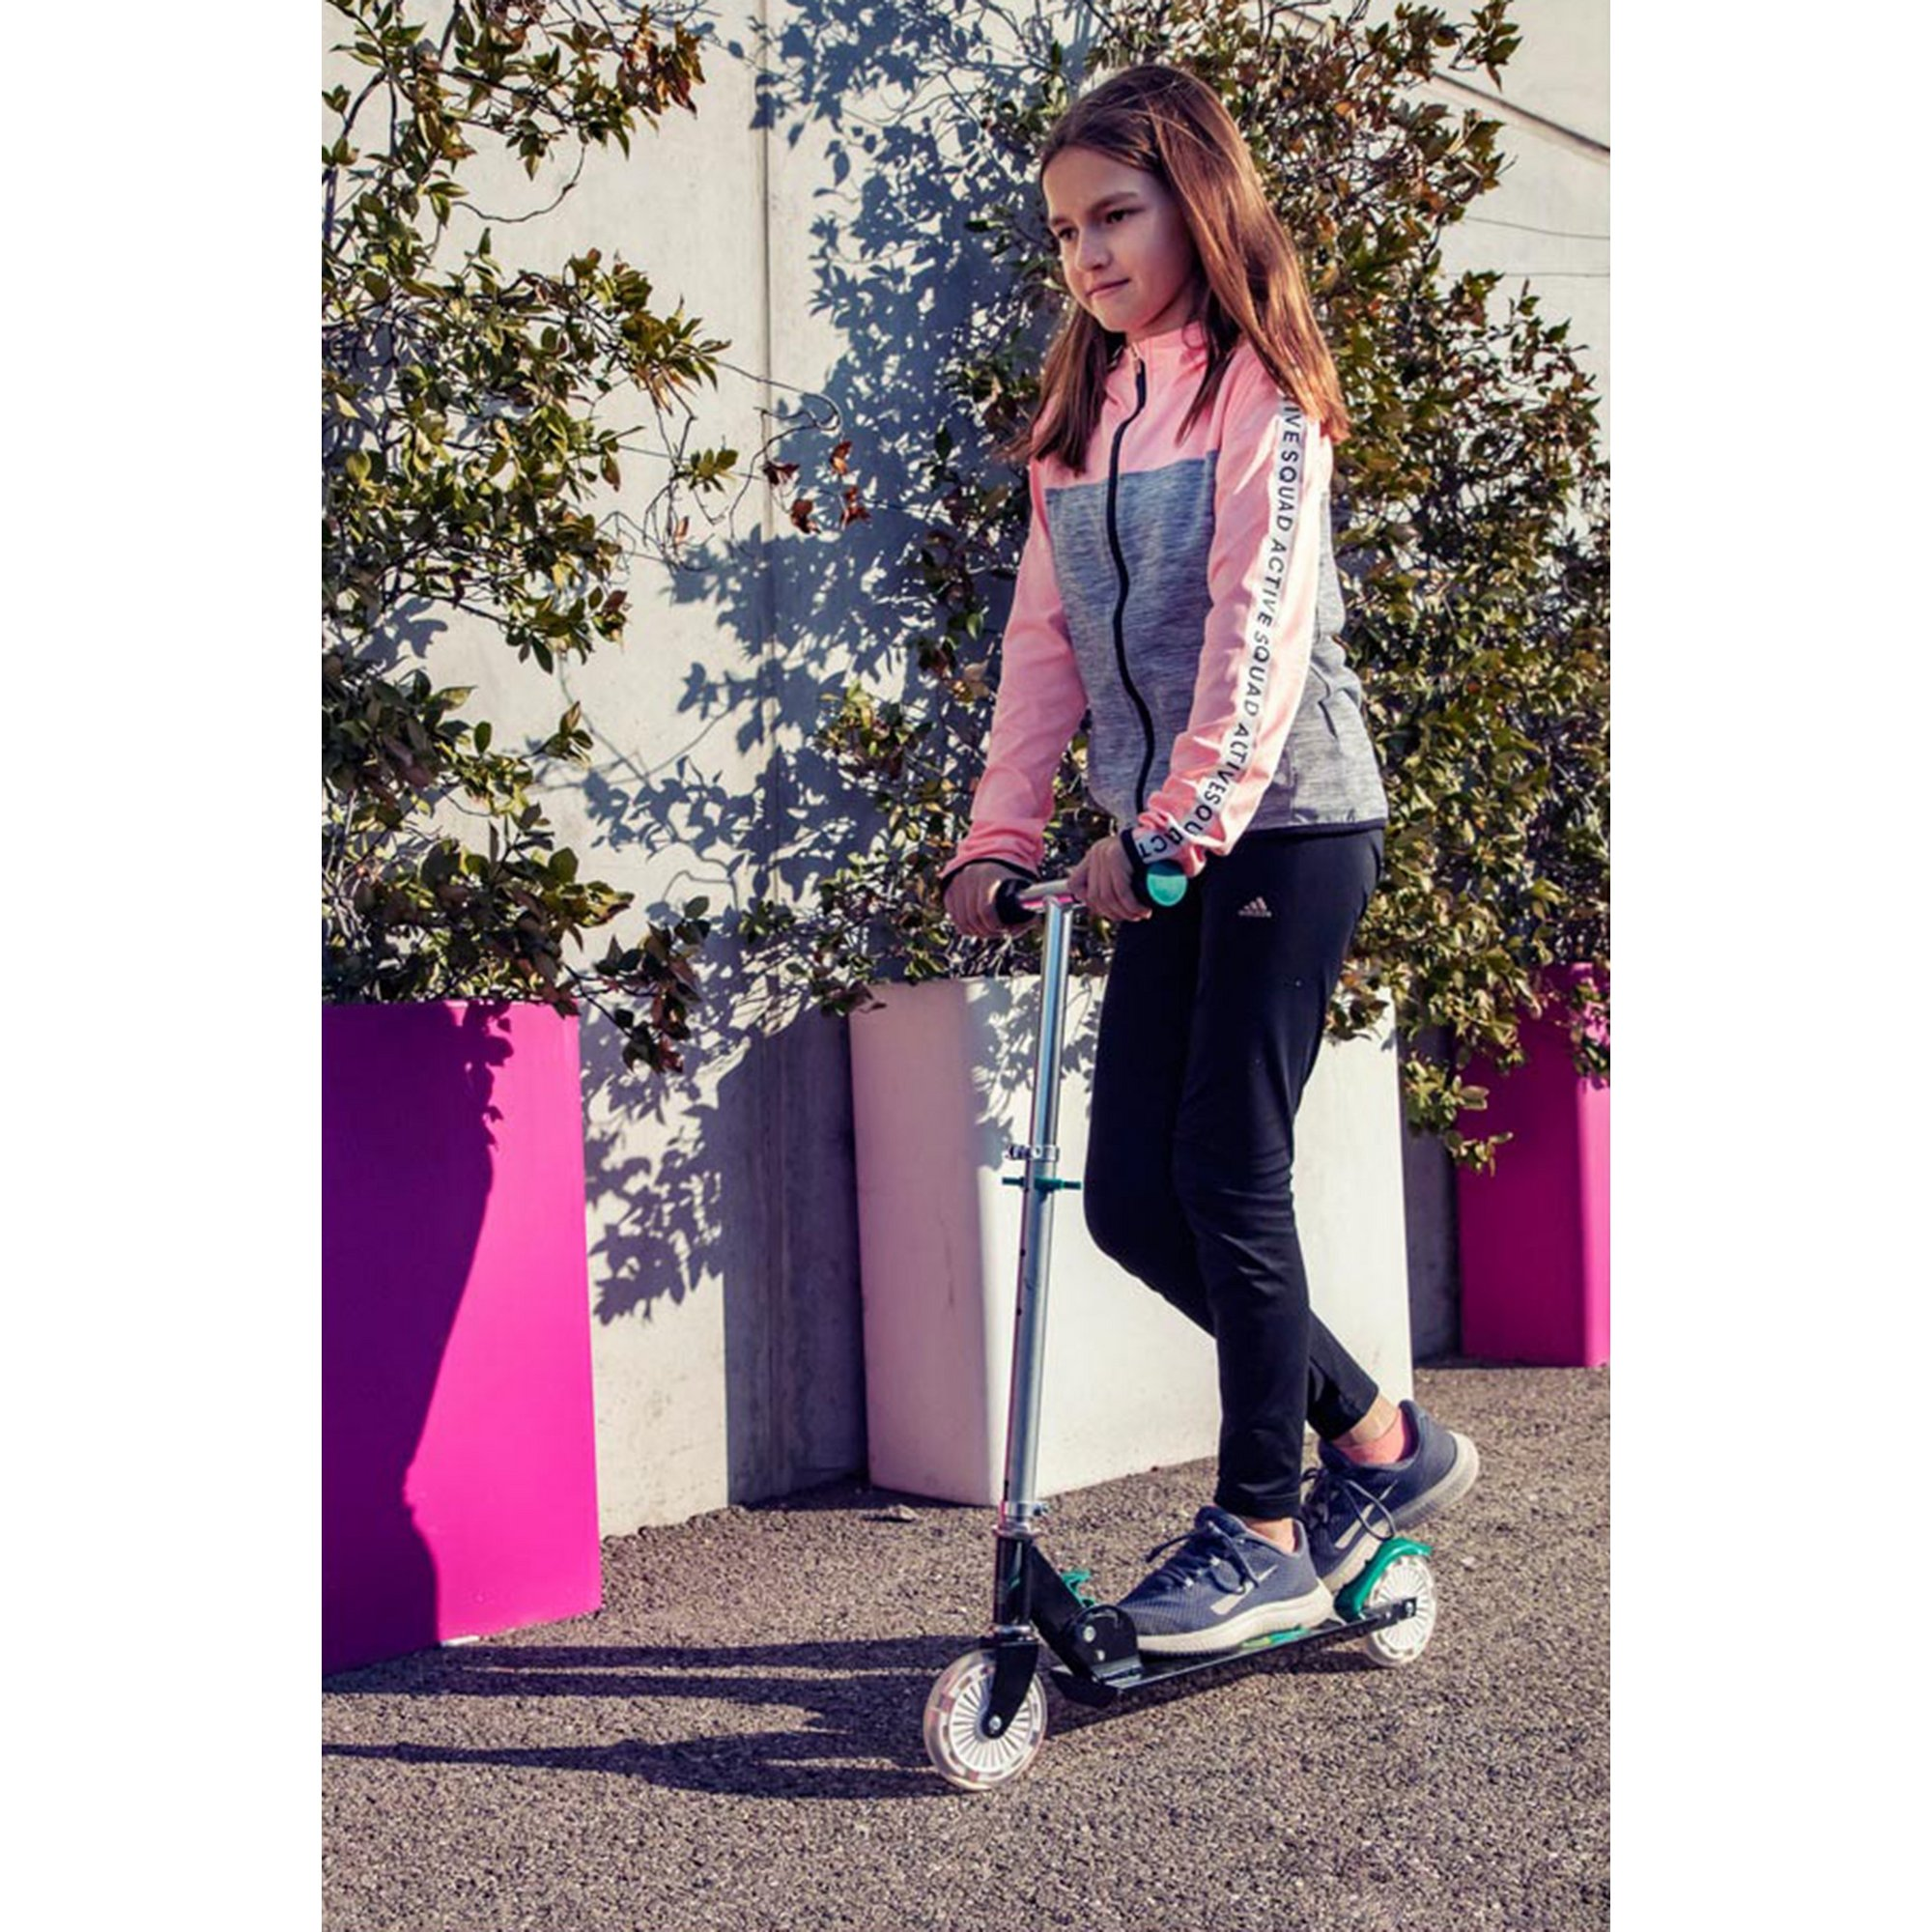 Image of Funbee Kids Two Wheel Inline Foldable Scooter with Flashing LED Wheels